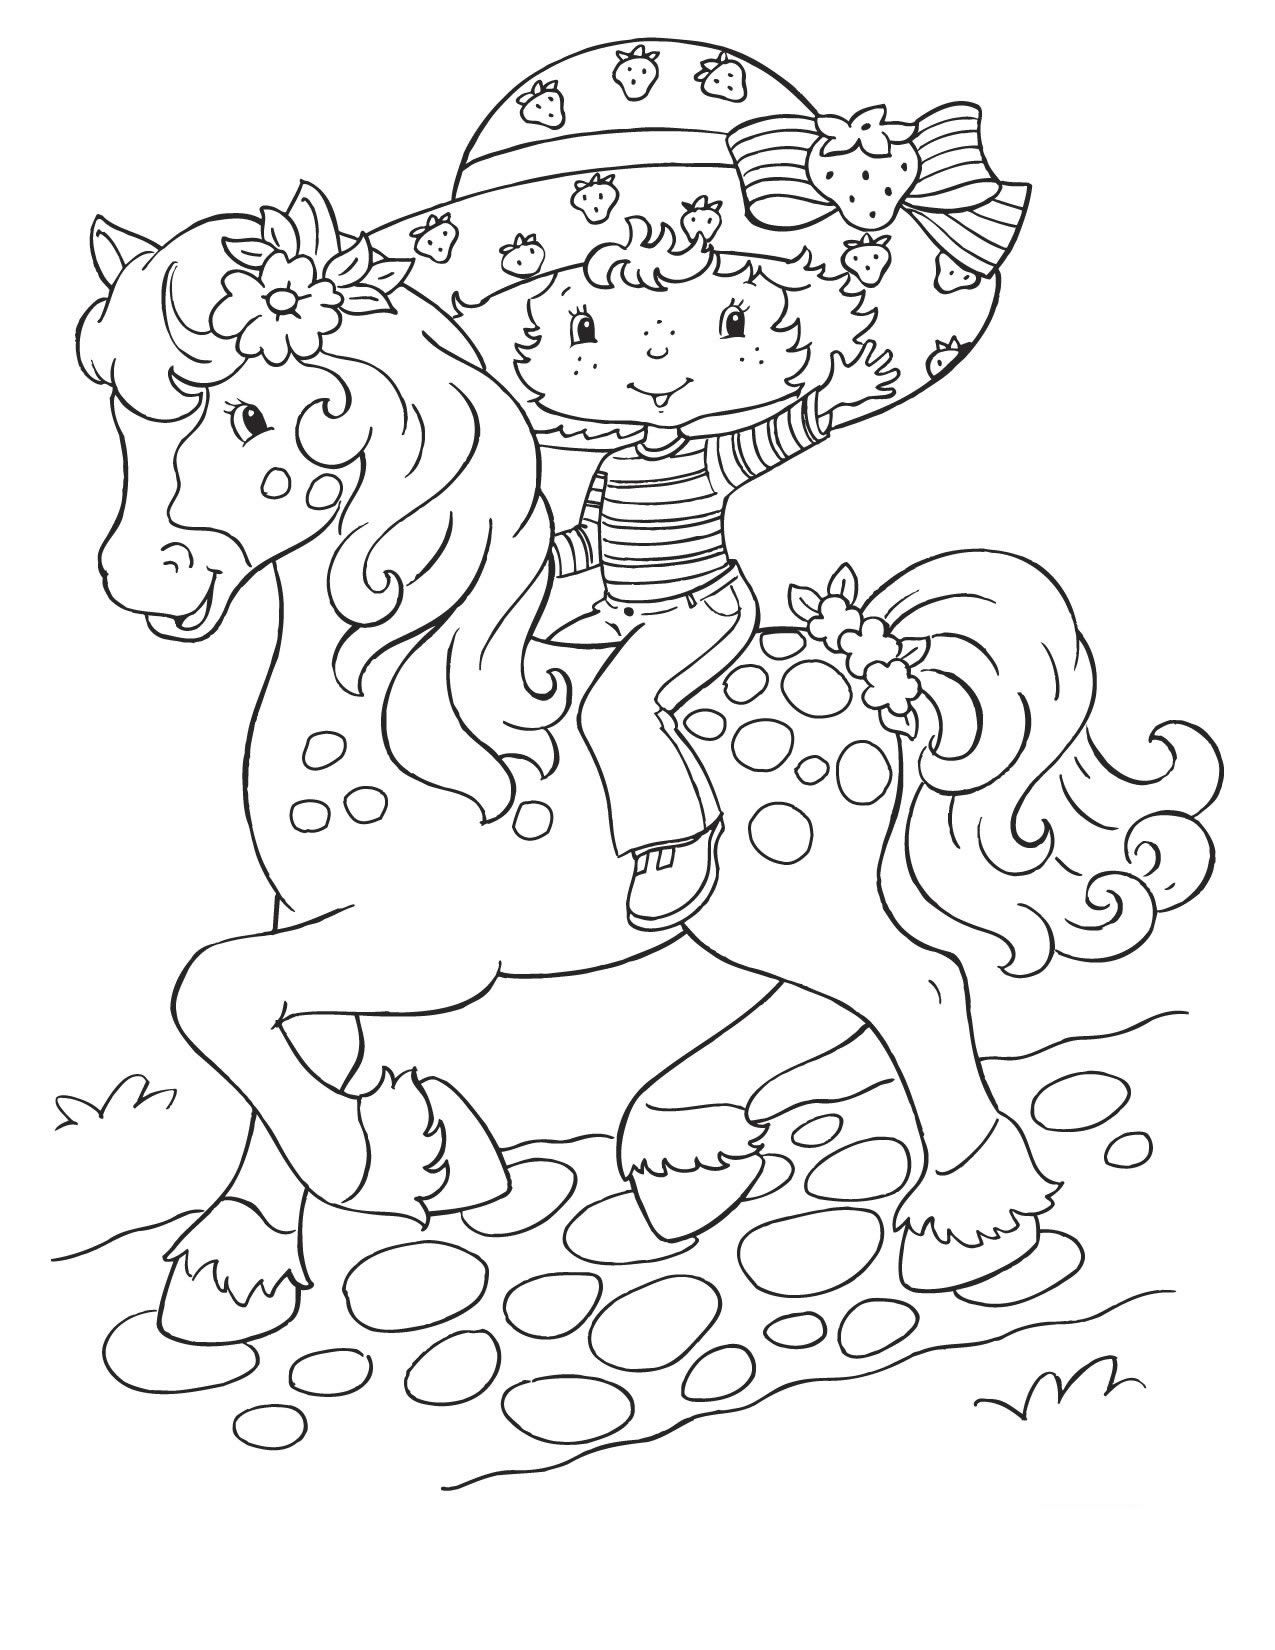 strawberry shortcake coloring pages Coloring page Strawberry